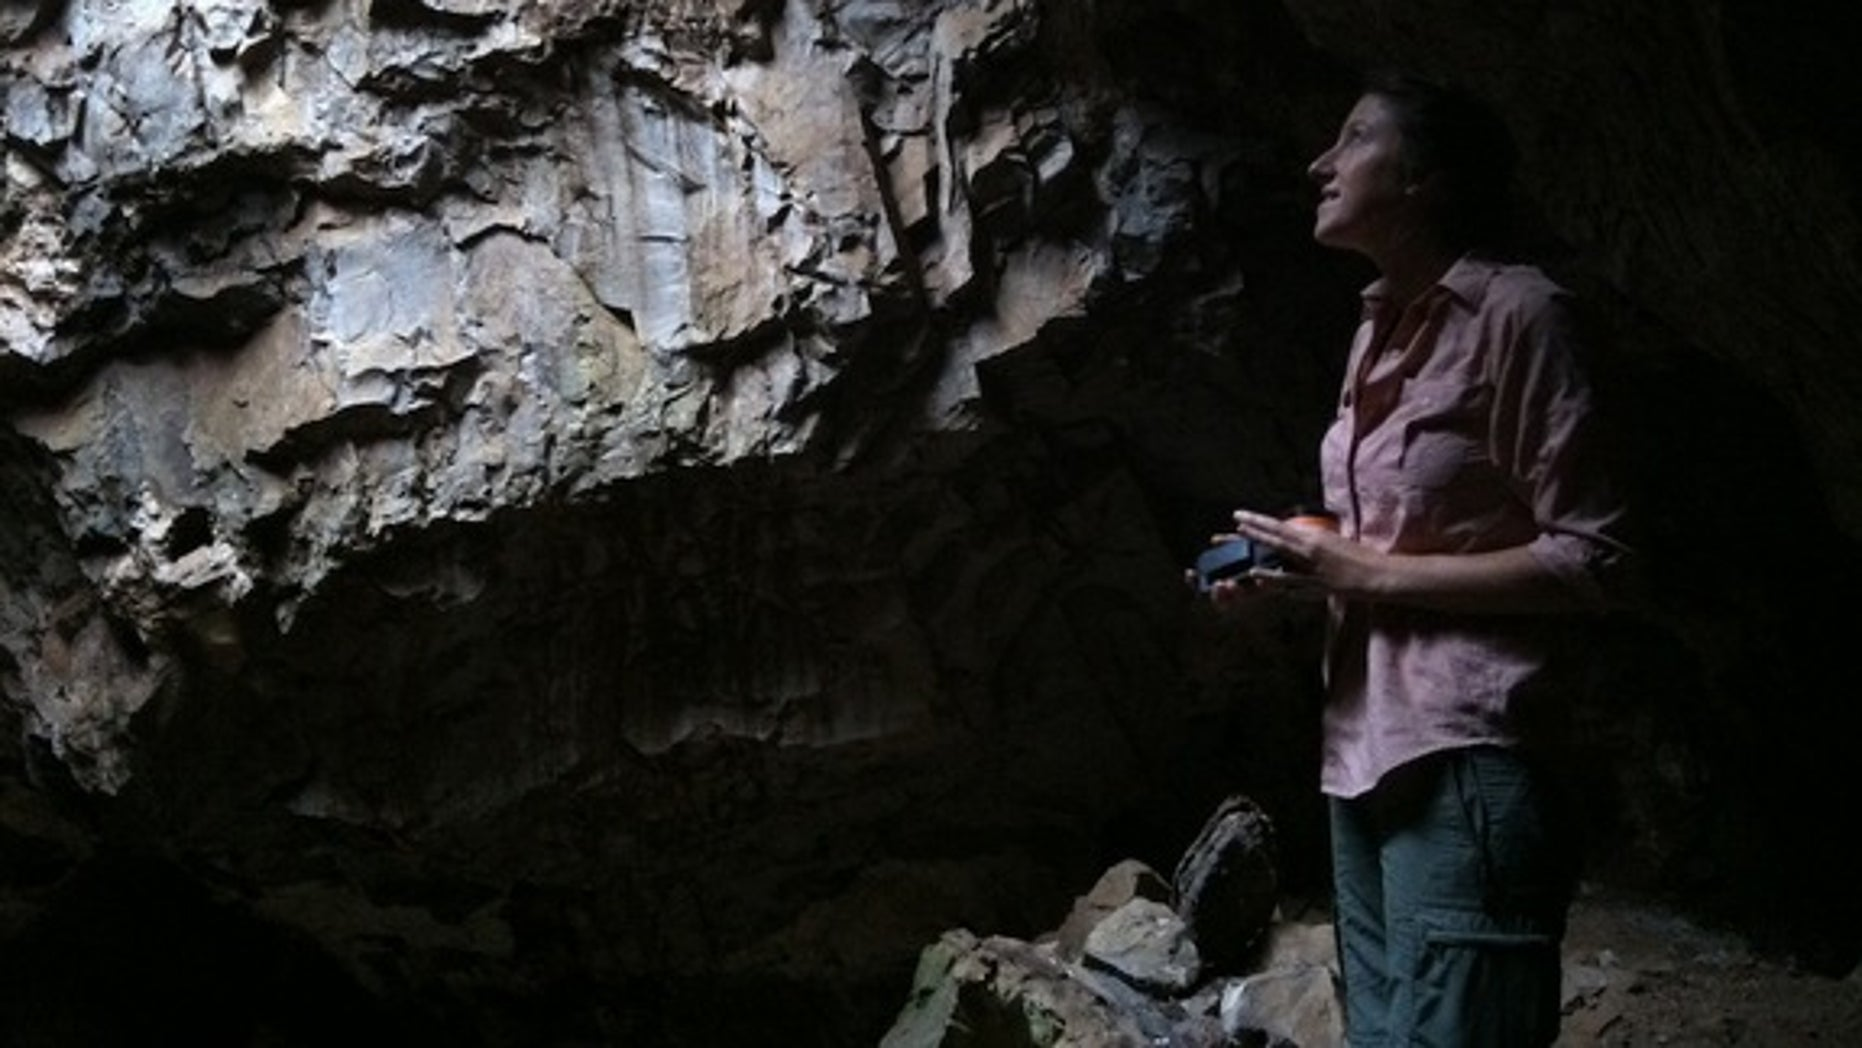 Scientist Hannah Morris admires the skylight in part of the Rising Star Cave in South Africa.